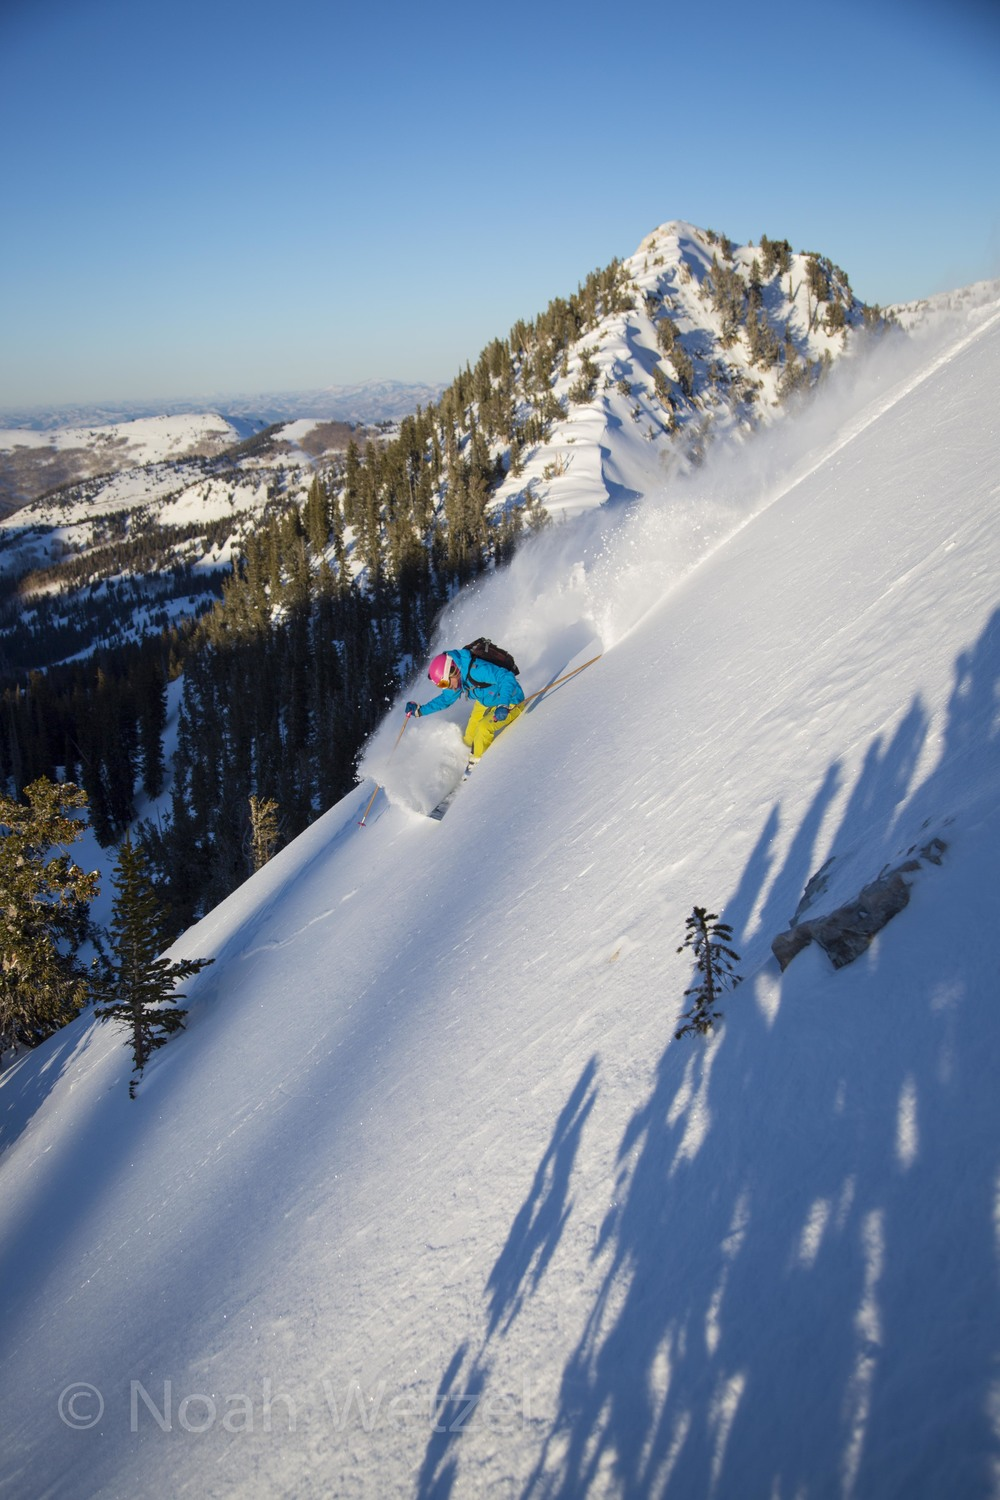 Lucy Sackbauer skiing at sunset in the Brighton Resort backcountry, Utah. Day 1